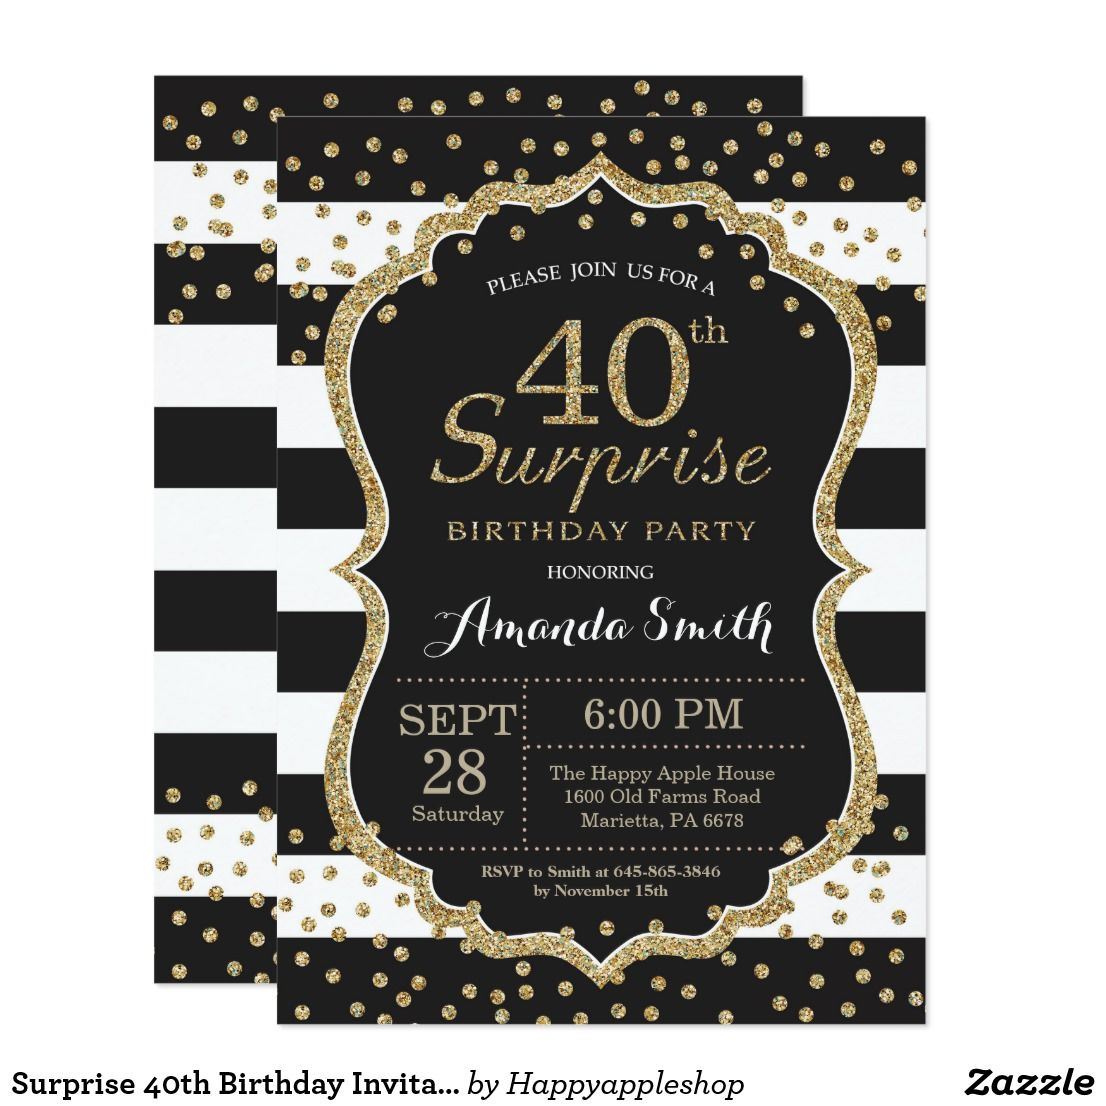 Surprise 40th Birthday Invitation Gold Glitter Invitation